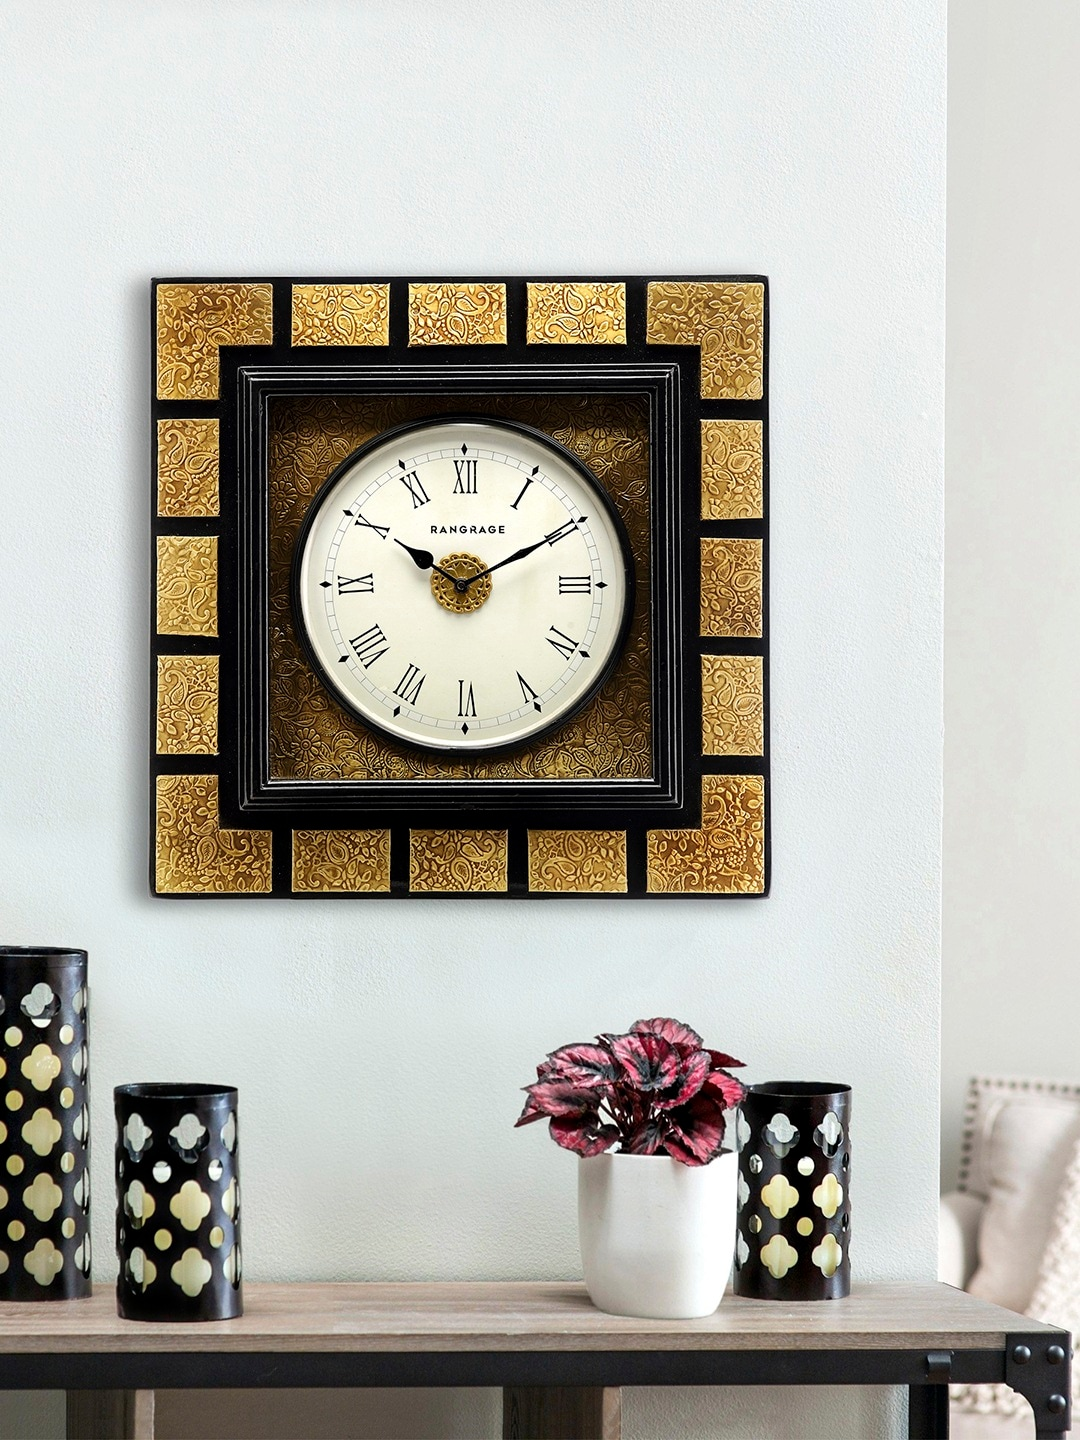 Buy wall clock online in india choice image home wall decoration buy online wall clock in india choice image home wall decoration buy wall clock online in amipublicfo Image collections